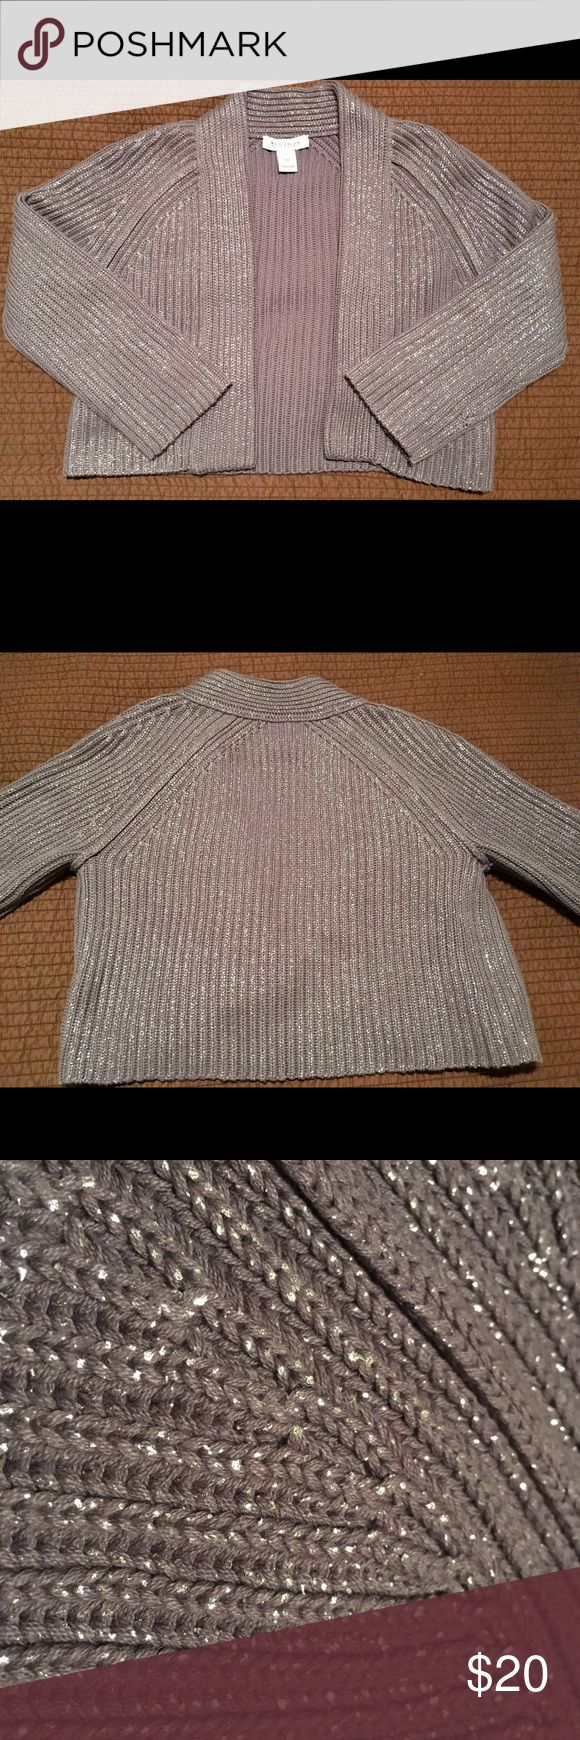 """WHBM Knit shrug / cardigan Grey with sparkling silver stitching cardigan.  It's a short cardi (waist length or shorter based on height) and would be great for a casual look or over a holiday dress!  Super cute!!!  Condition:  Perfect gently preworn condition.  No flaws.  Like new!!  Measurement: Back: 18"""" (from top of collar to bottom) Back minus collar: 16"""" Bust: 17"""" (but since it's Knit, it's stretchy/flexible) Sleeve: 21""""  Material & care: 63% cotton 37% Acrylic Hand wash cold,"""